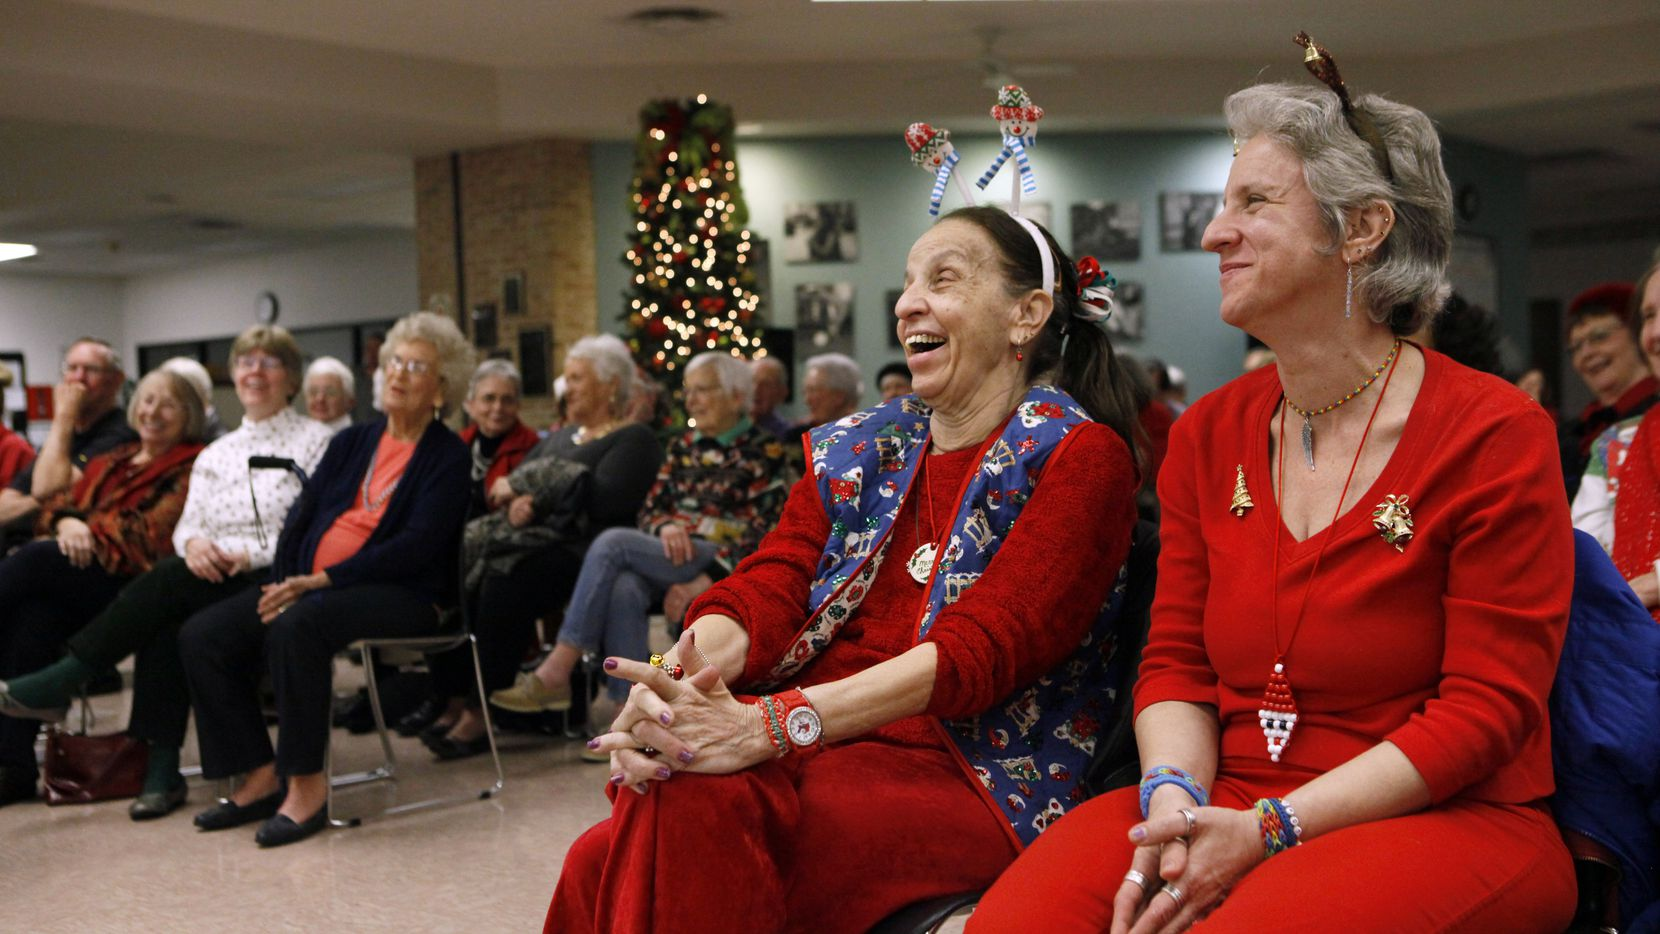 Susan Betz (left) and daughter Diana Betz laughed at a joke by Richardson Community Band conductor George Jones during a free holiday concert at the Richardson Senior Citizen Center on Dec. 10, 2014.